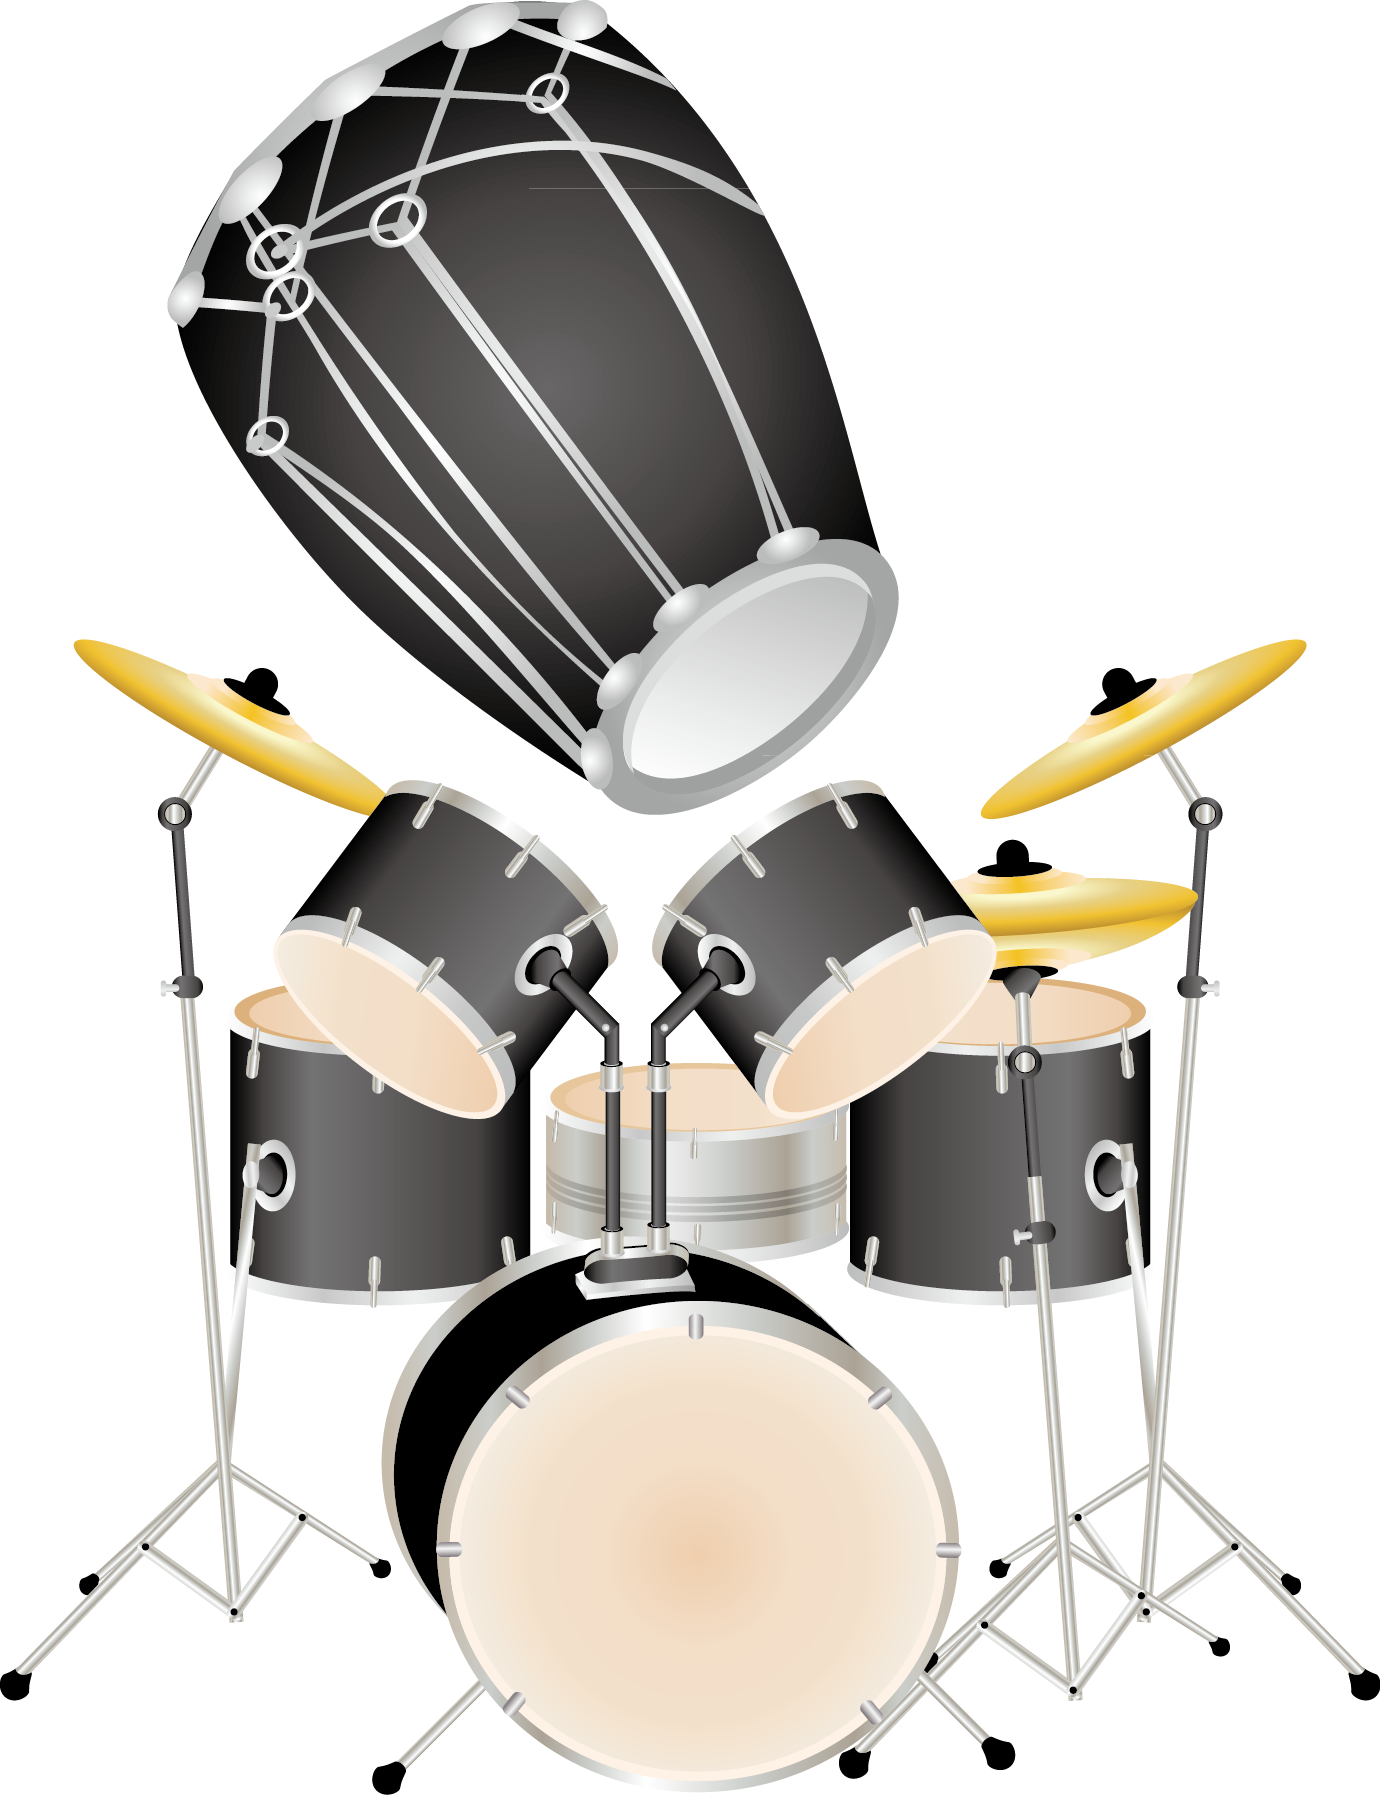 Drums clipart percussion instrument. Clip art modern music